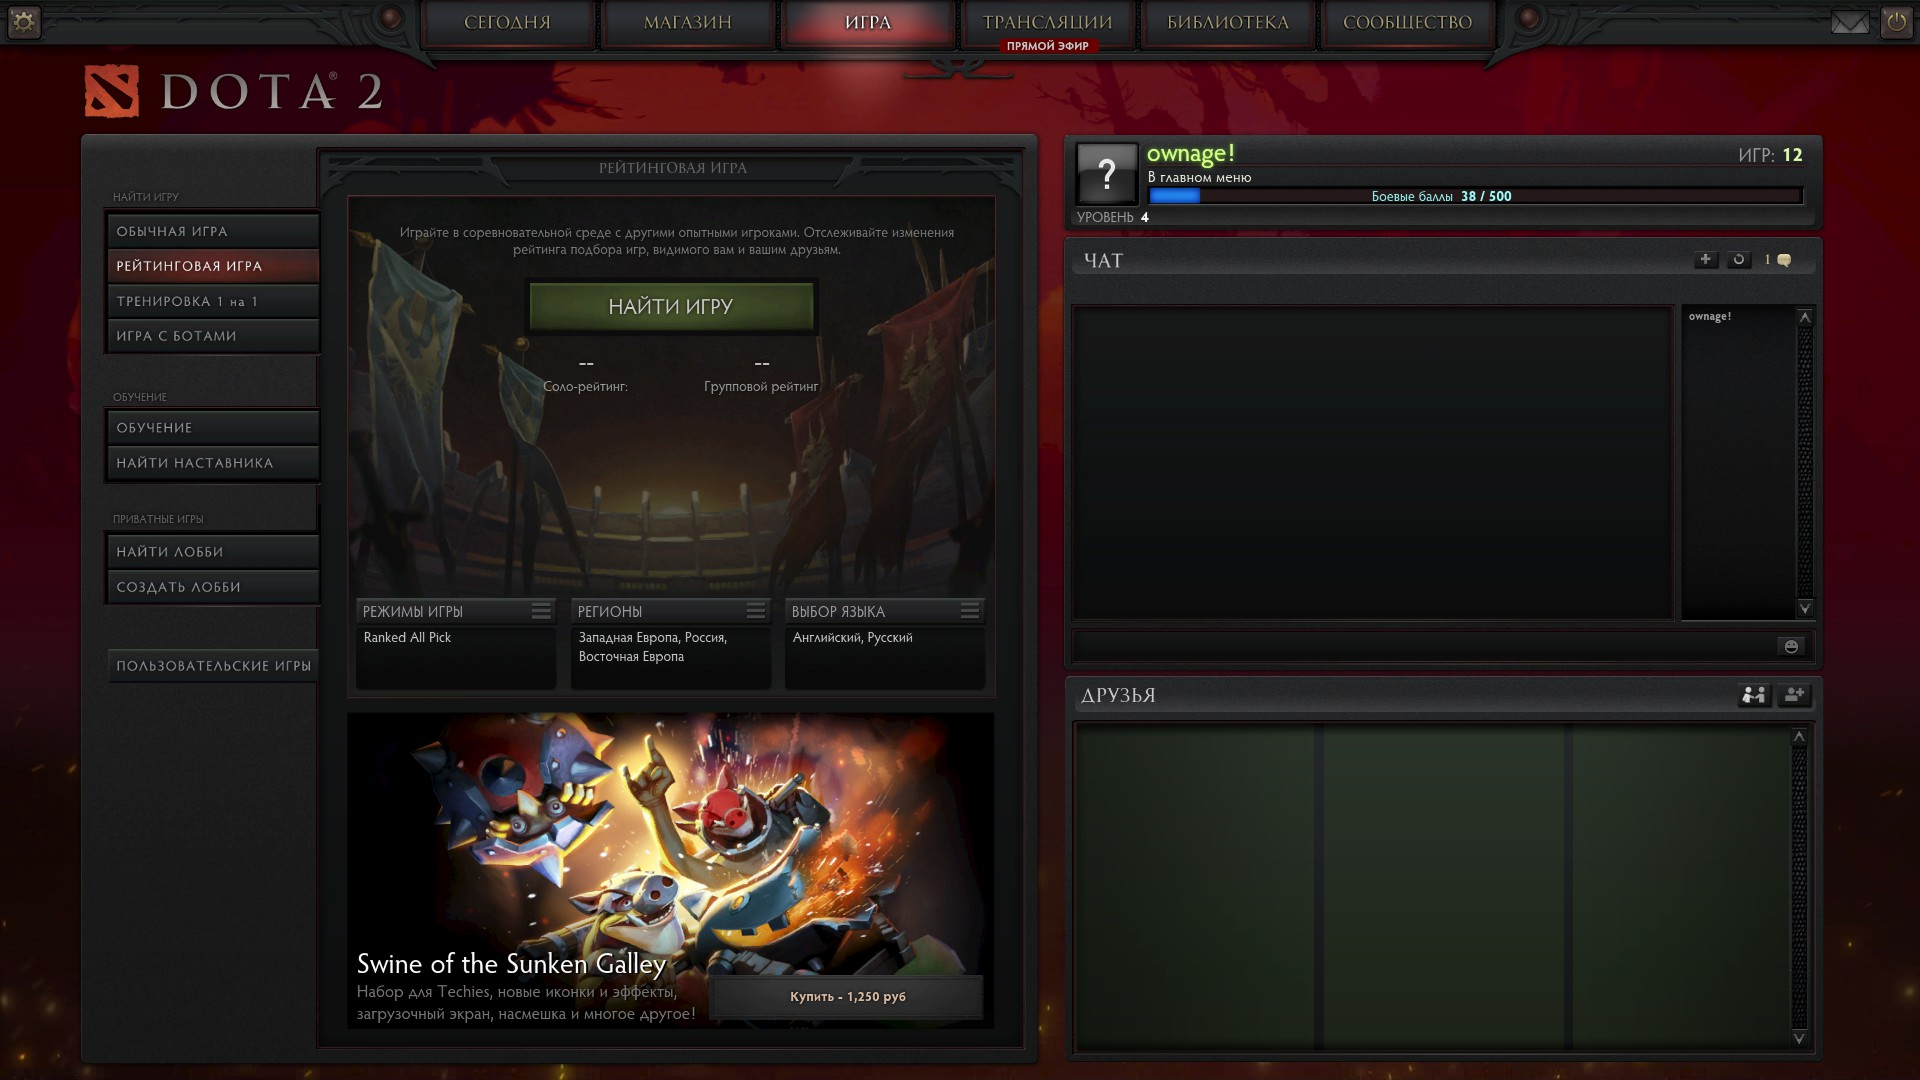 Oracle matchmaking abuse